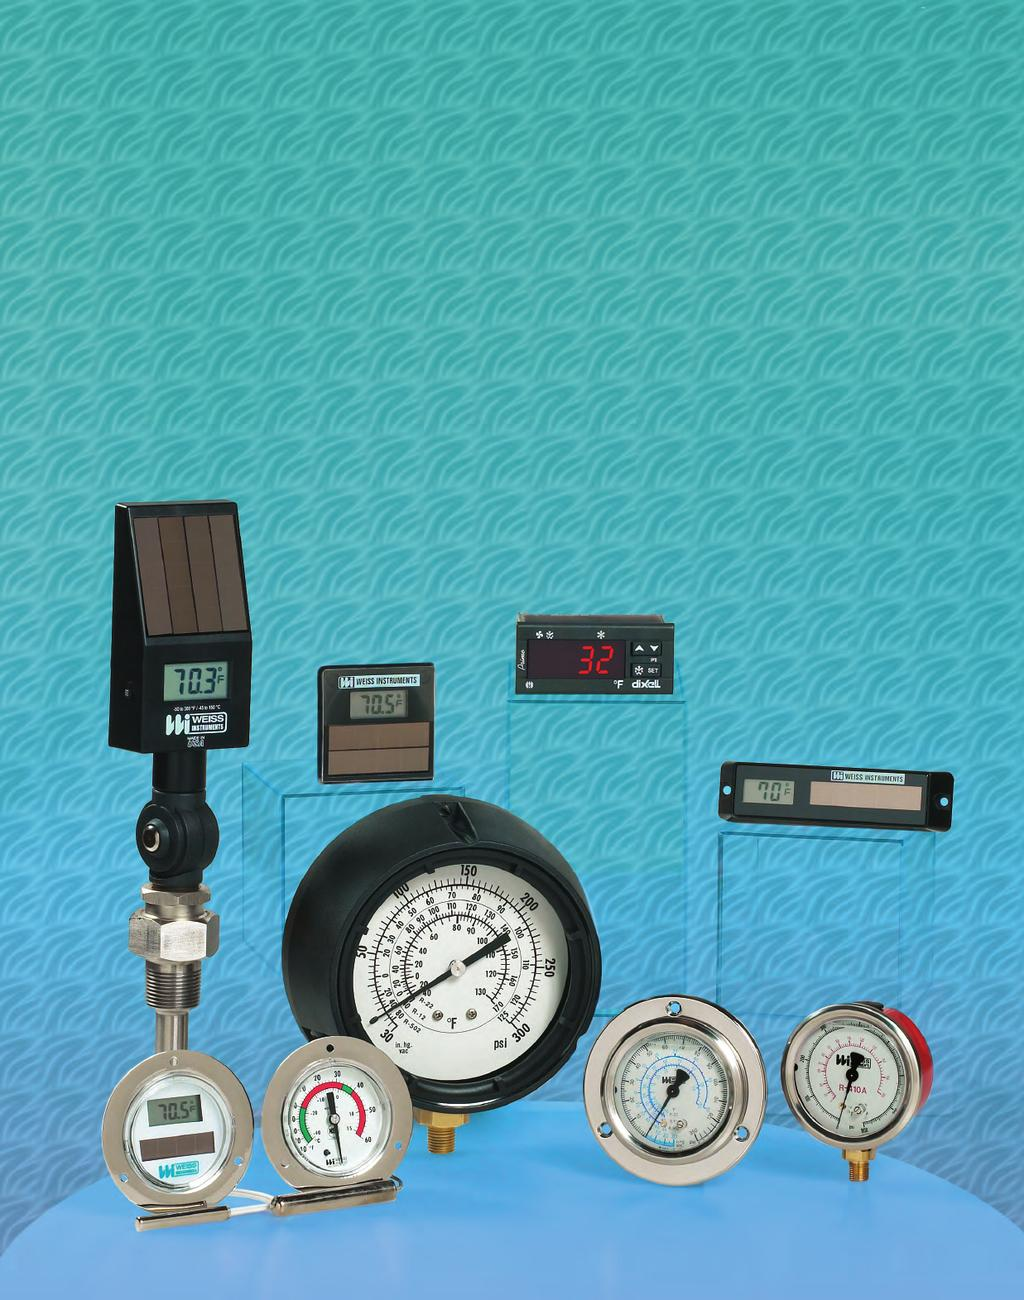 Thermometers Pressure Gauges Hvac R Instruments Pdf Manifold Value R22 Single Gauge Accurate 1